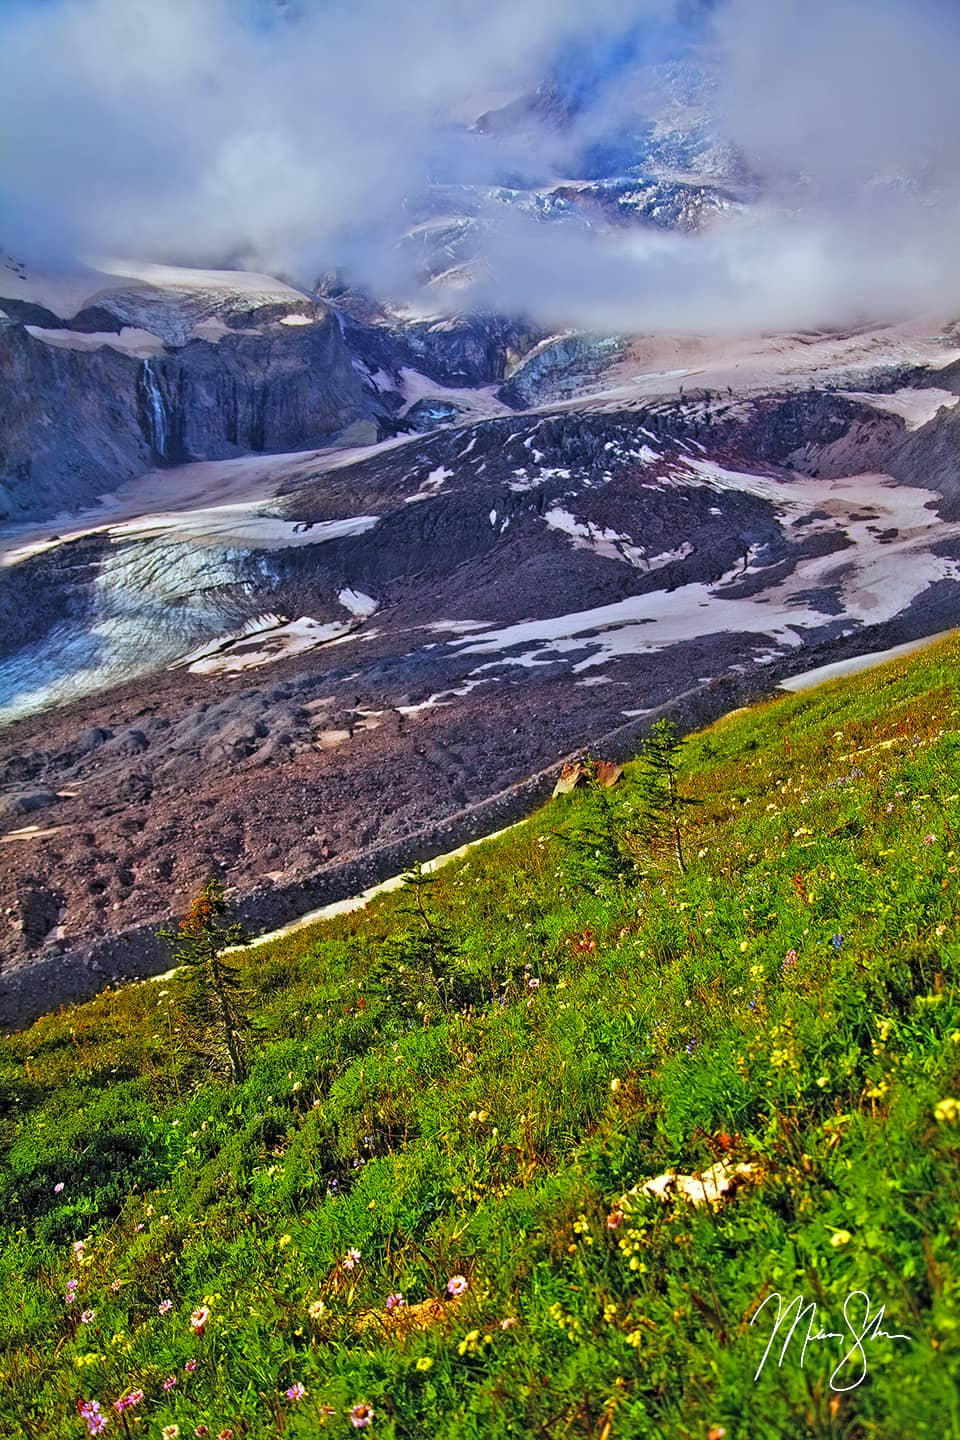 Open edition fine art print of Nisqually Glacier Vertical from Mickey Shannon Photography. Location: Paradise, Mount Rainier National Park, Washington, USA